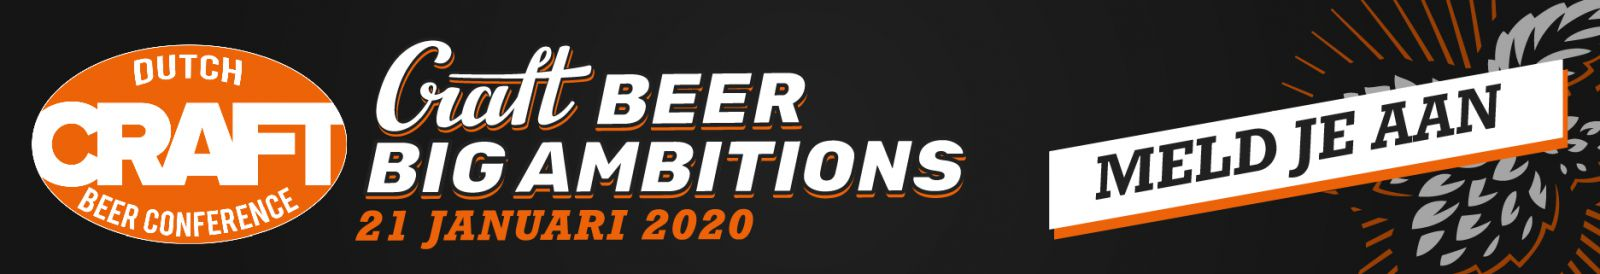 Dutch Craft Beer Conference 2020 - Craft Beer Big Ambitions